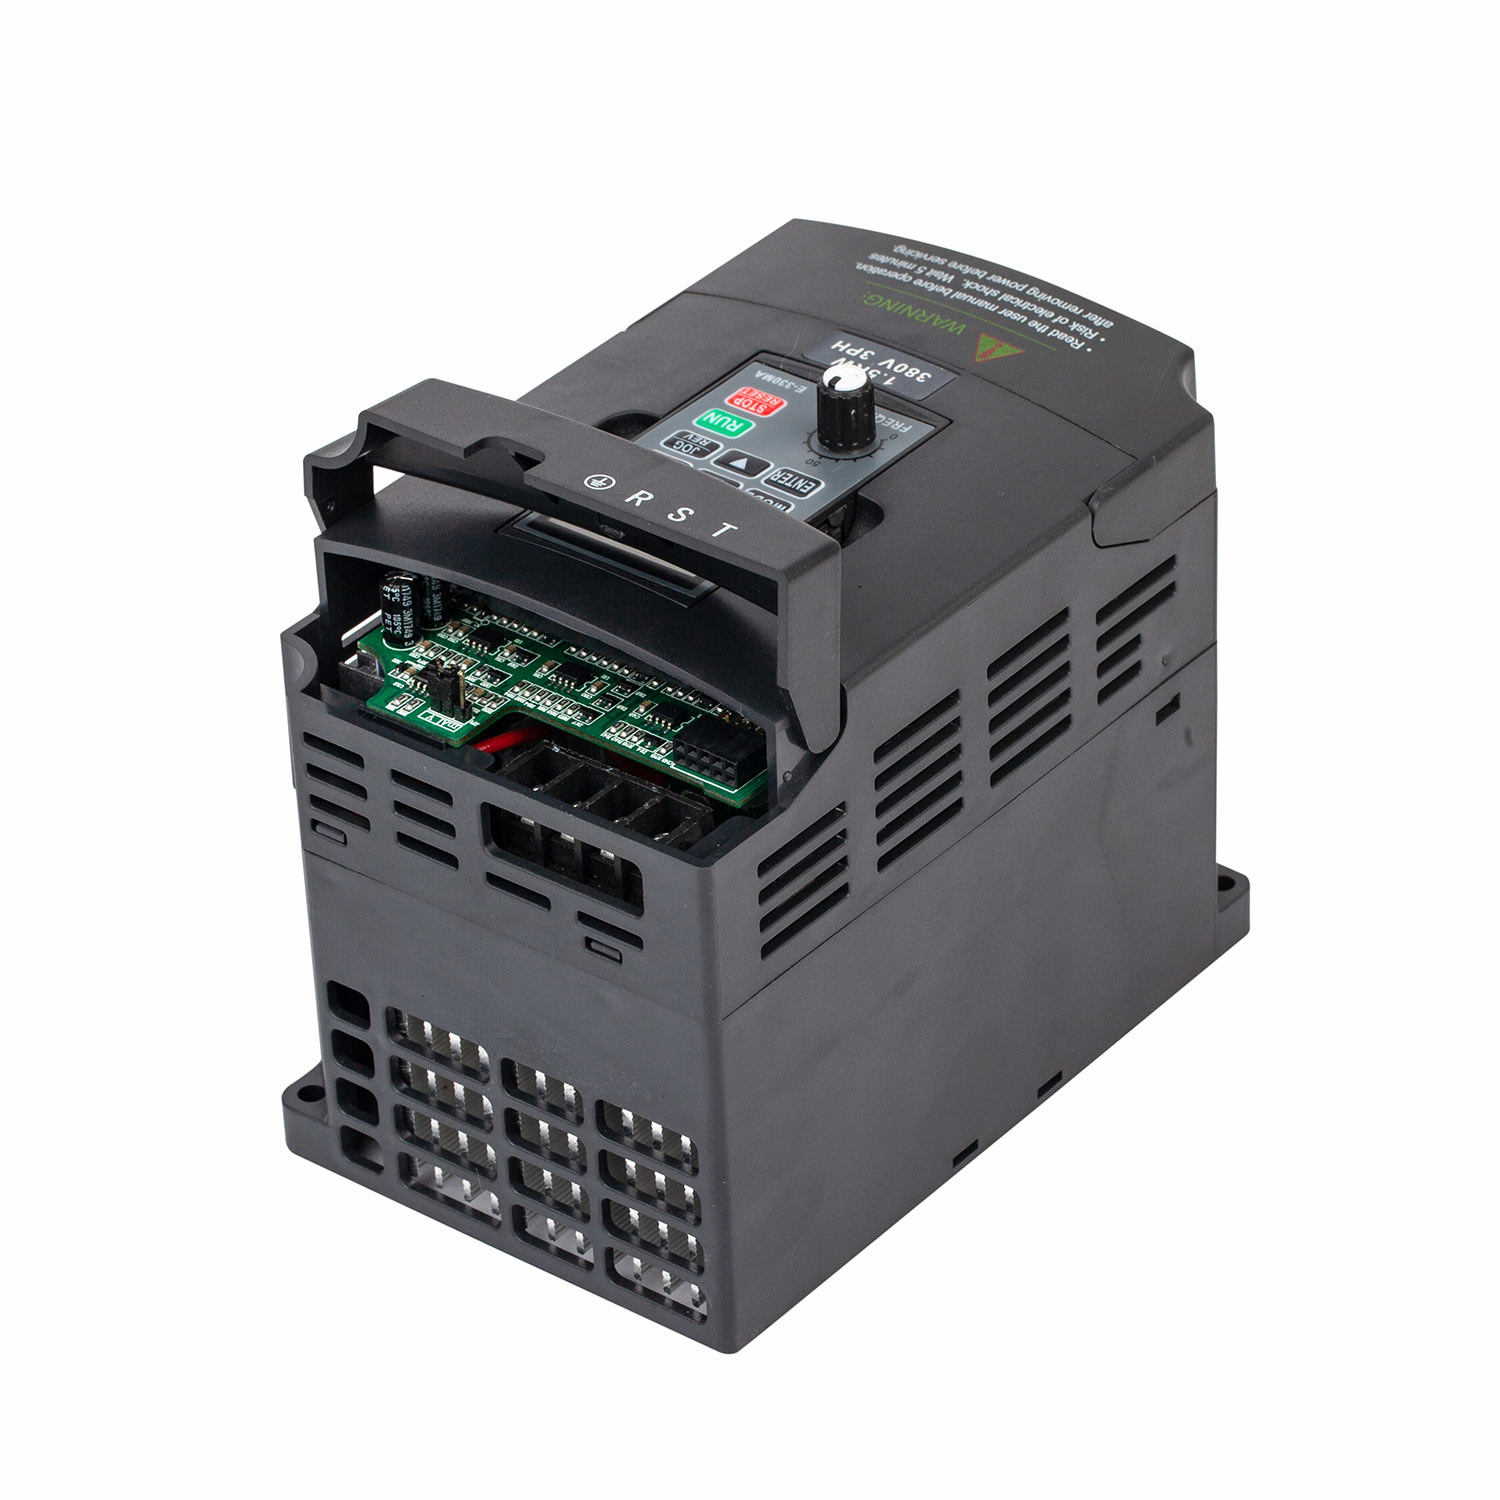 VSD Speed Controller 5.5kw Control and Drive The Speed of The Motor